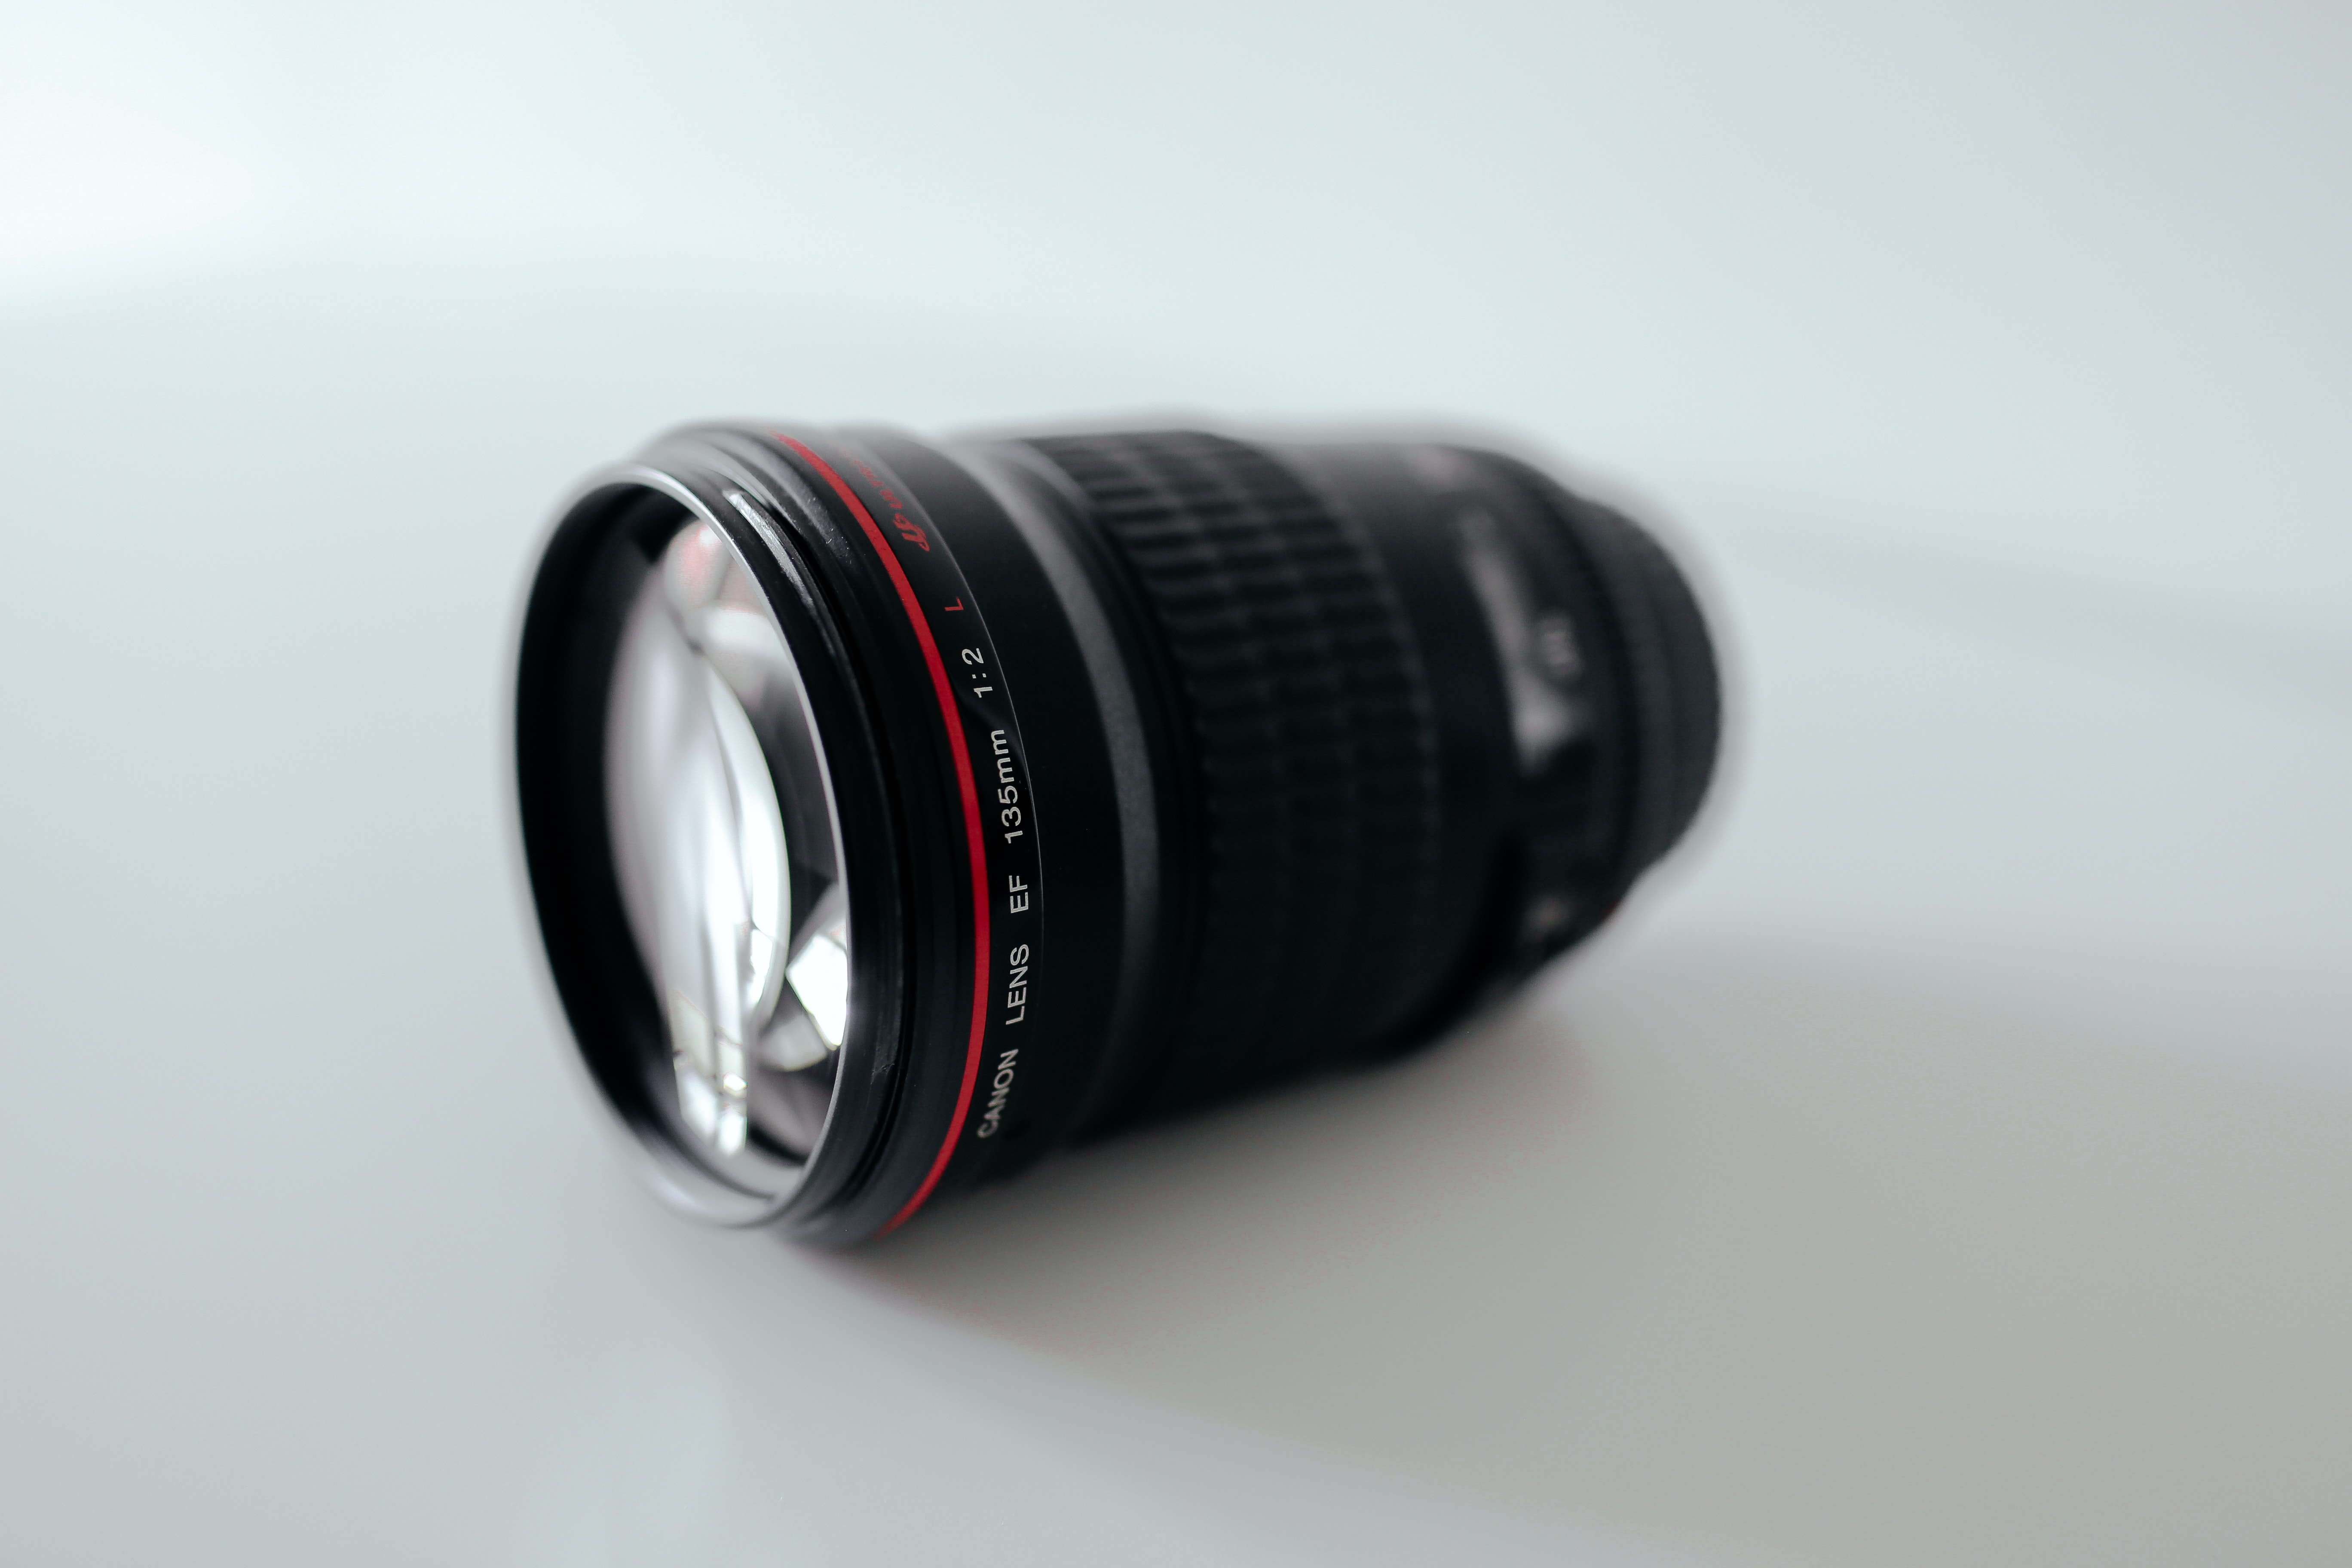 closeup photography of black camera lens on white surface